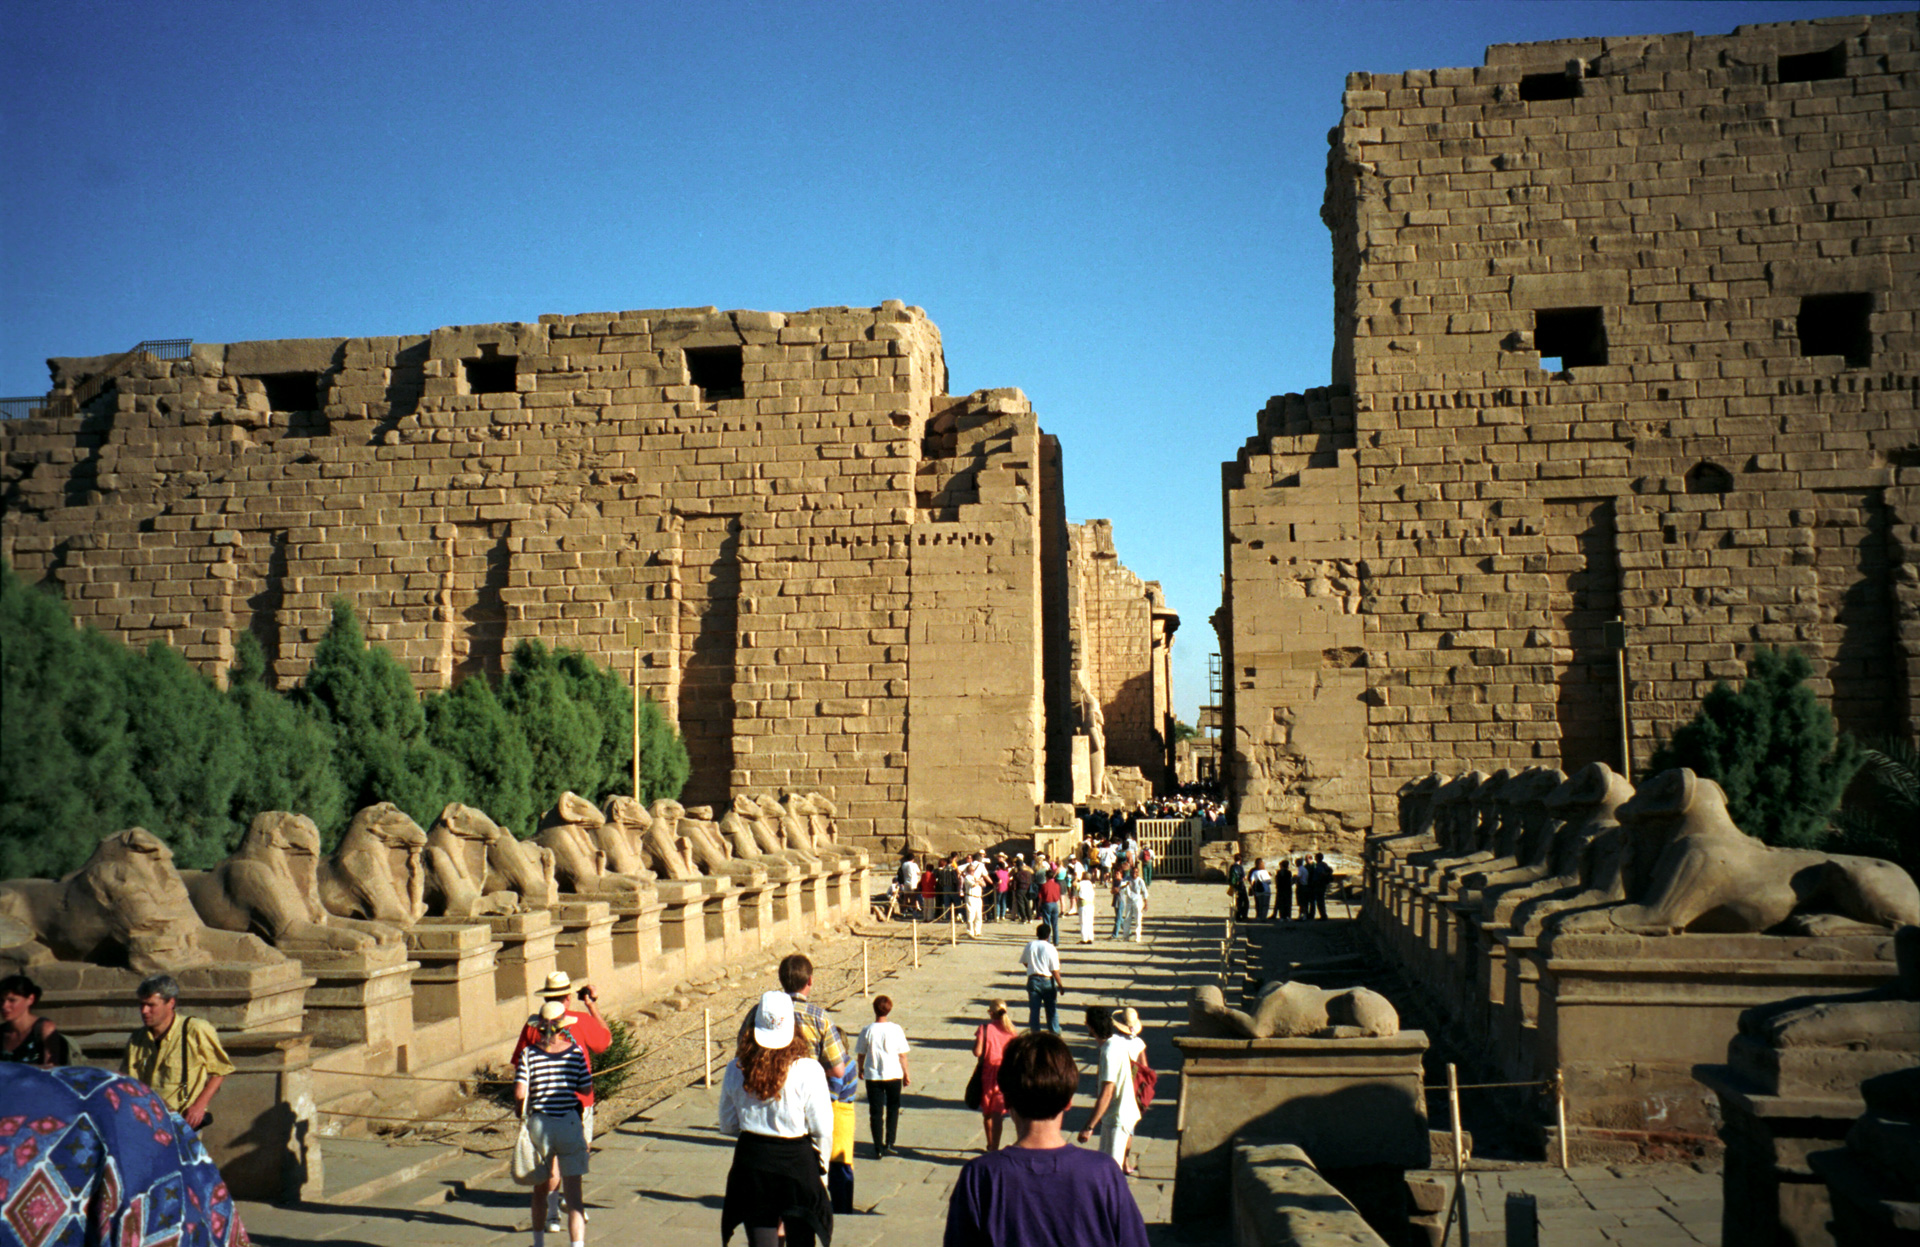 http://upload.wikimedia.org/wikipedia/commons/8/8d/Karnak01%28js%29.jpg